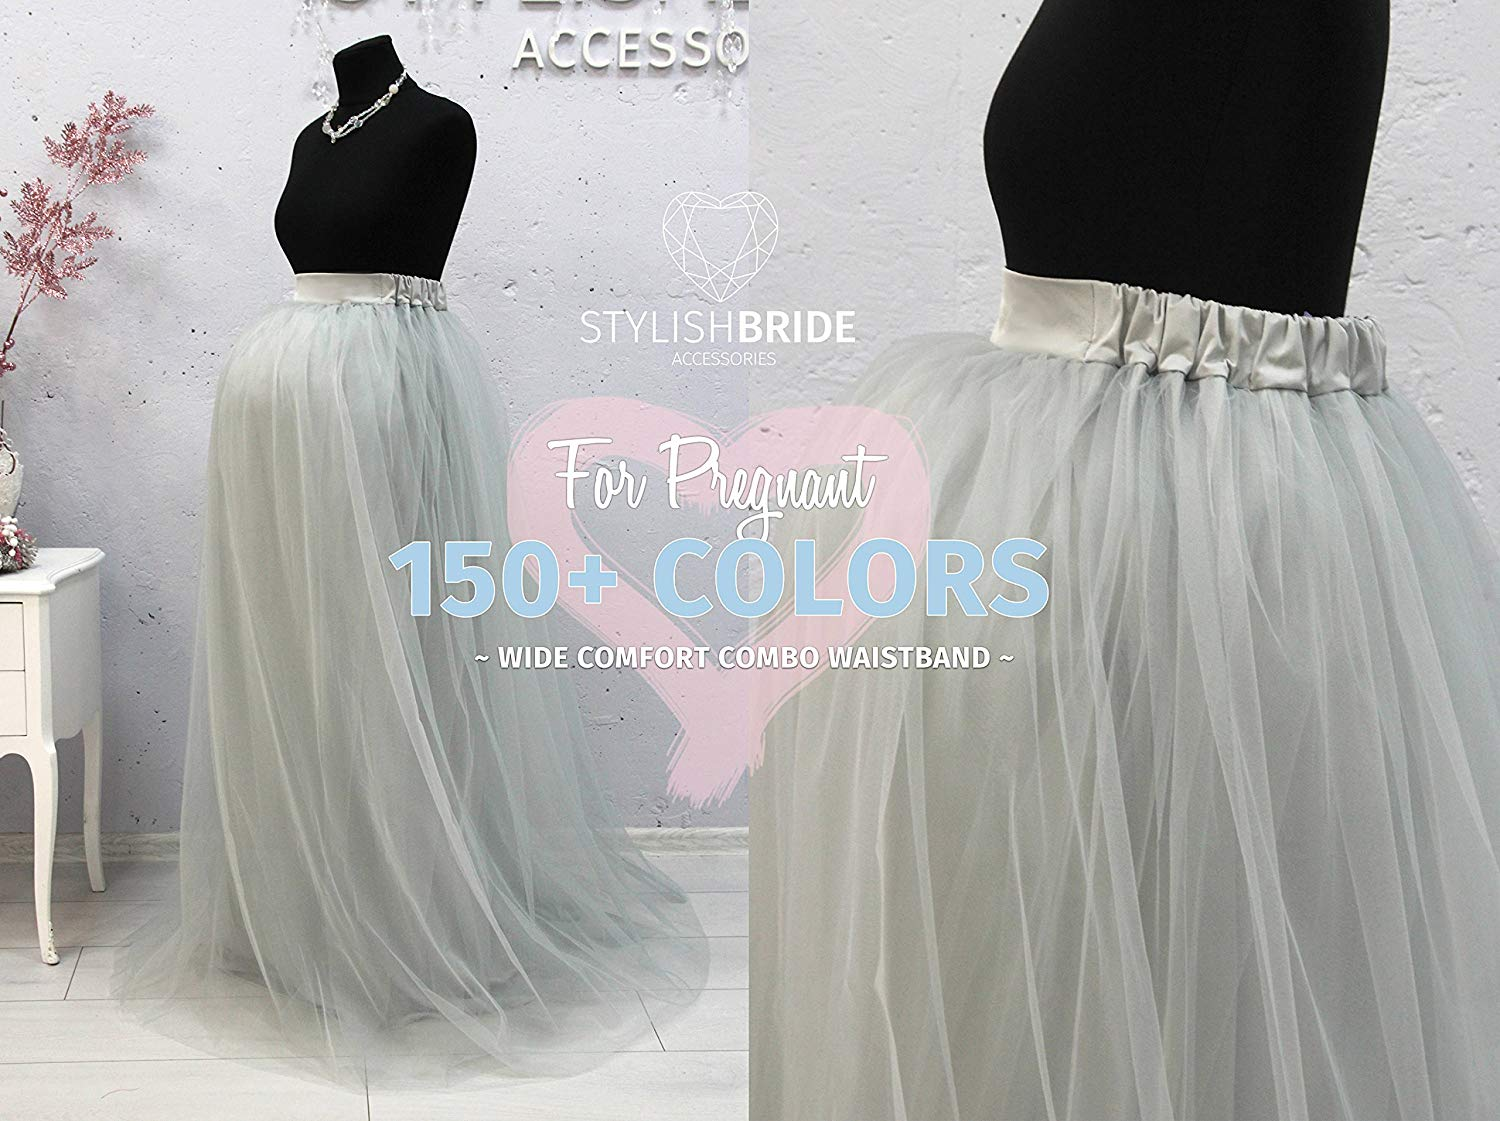 551de8d3a2 Get Quotations · Maternity Long Tulle Skirt, Floor length skirts for  pregnant woman, Tulle Skirt Grey Blue